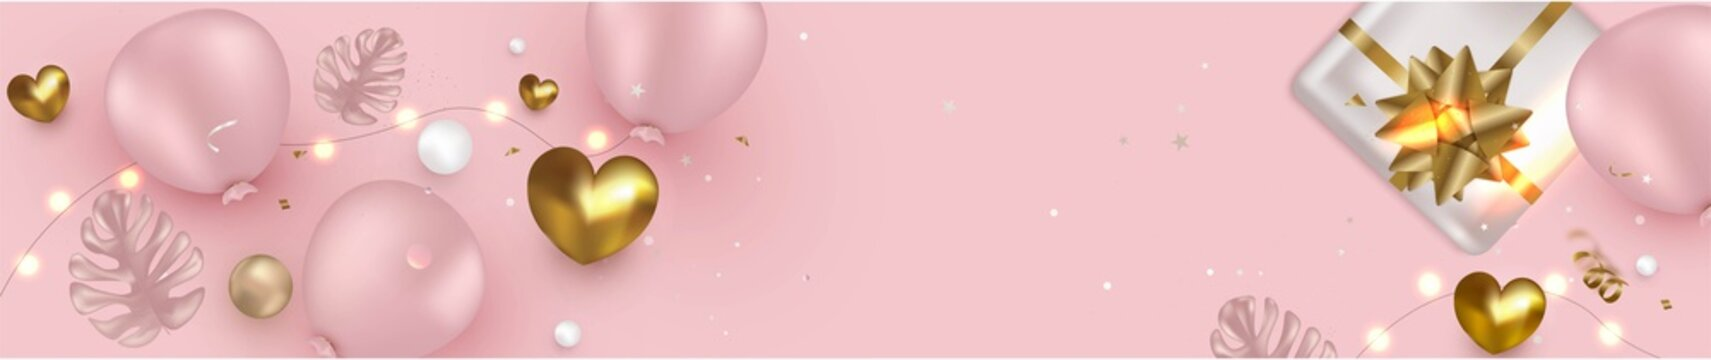 Celebration pink template with balloons, gift box, golden hearts. Flat lay horizontal banner. Concept for web cover, social networks, promotional sales.Realistic vector background.